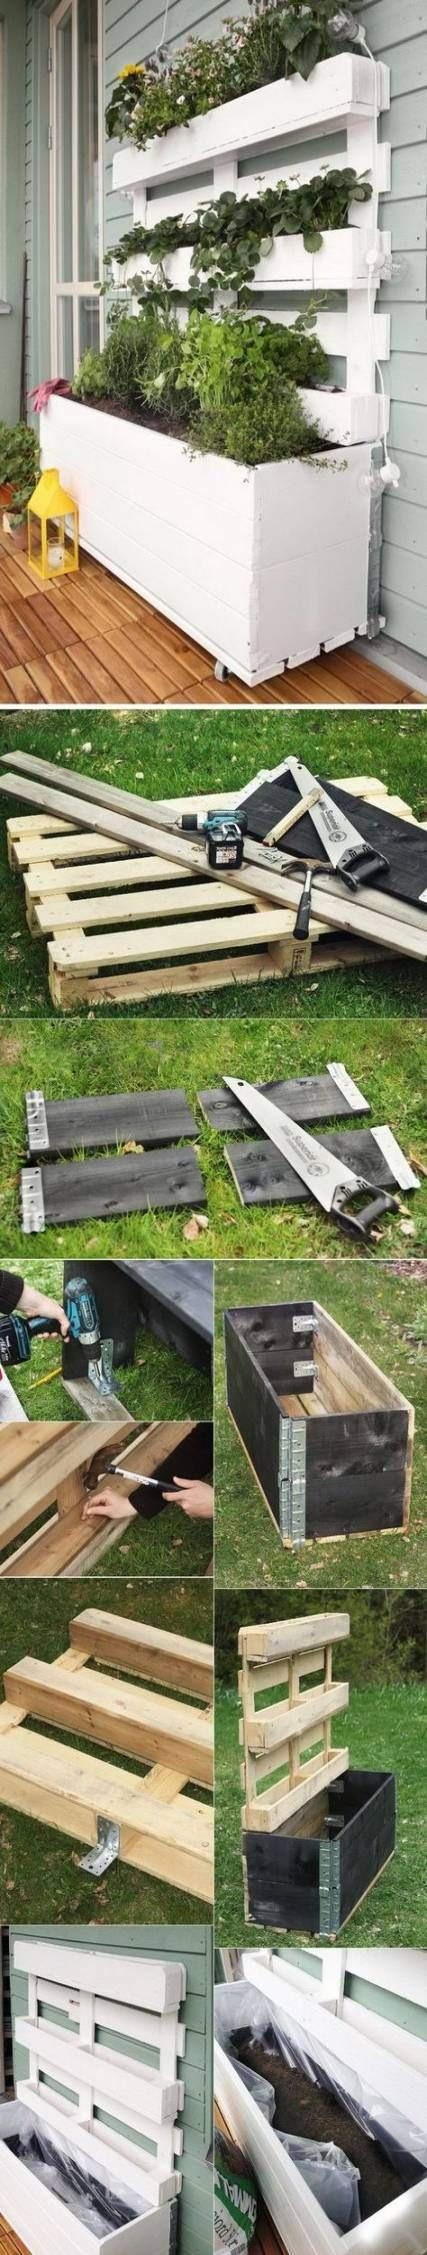 Garden boxes raised spaces 56 Ideas for 2019